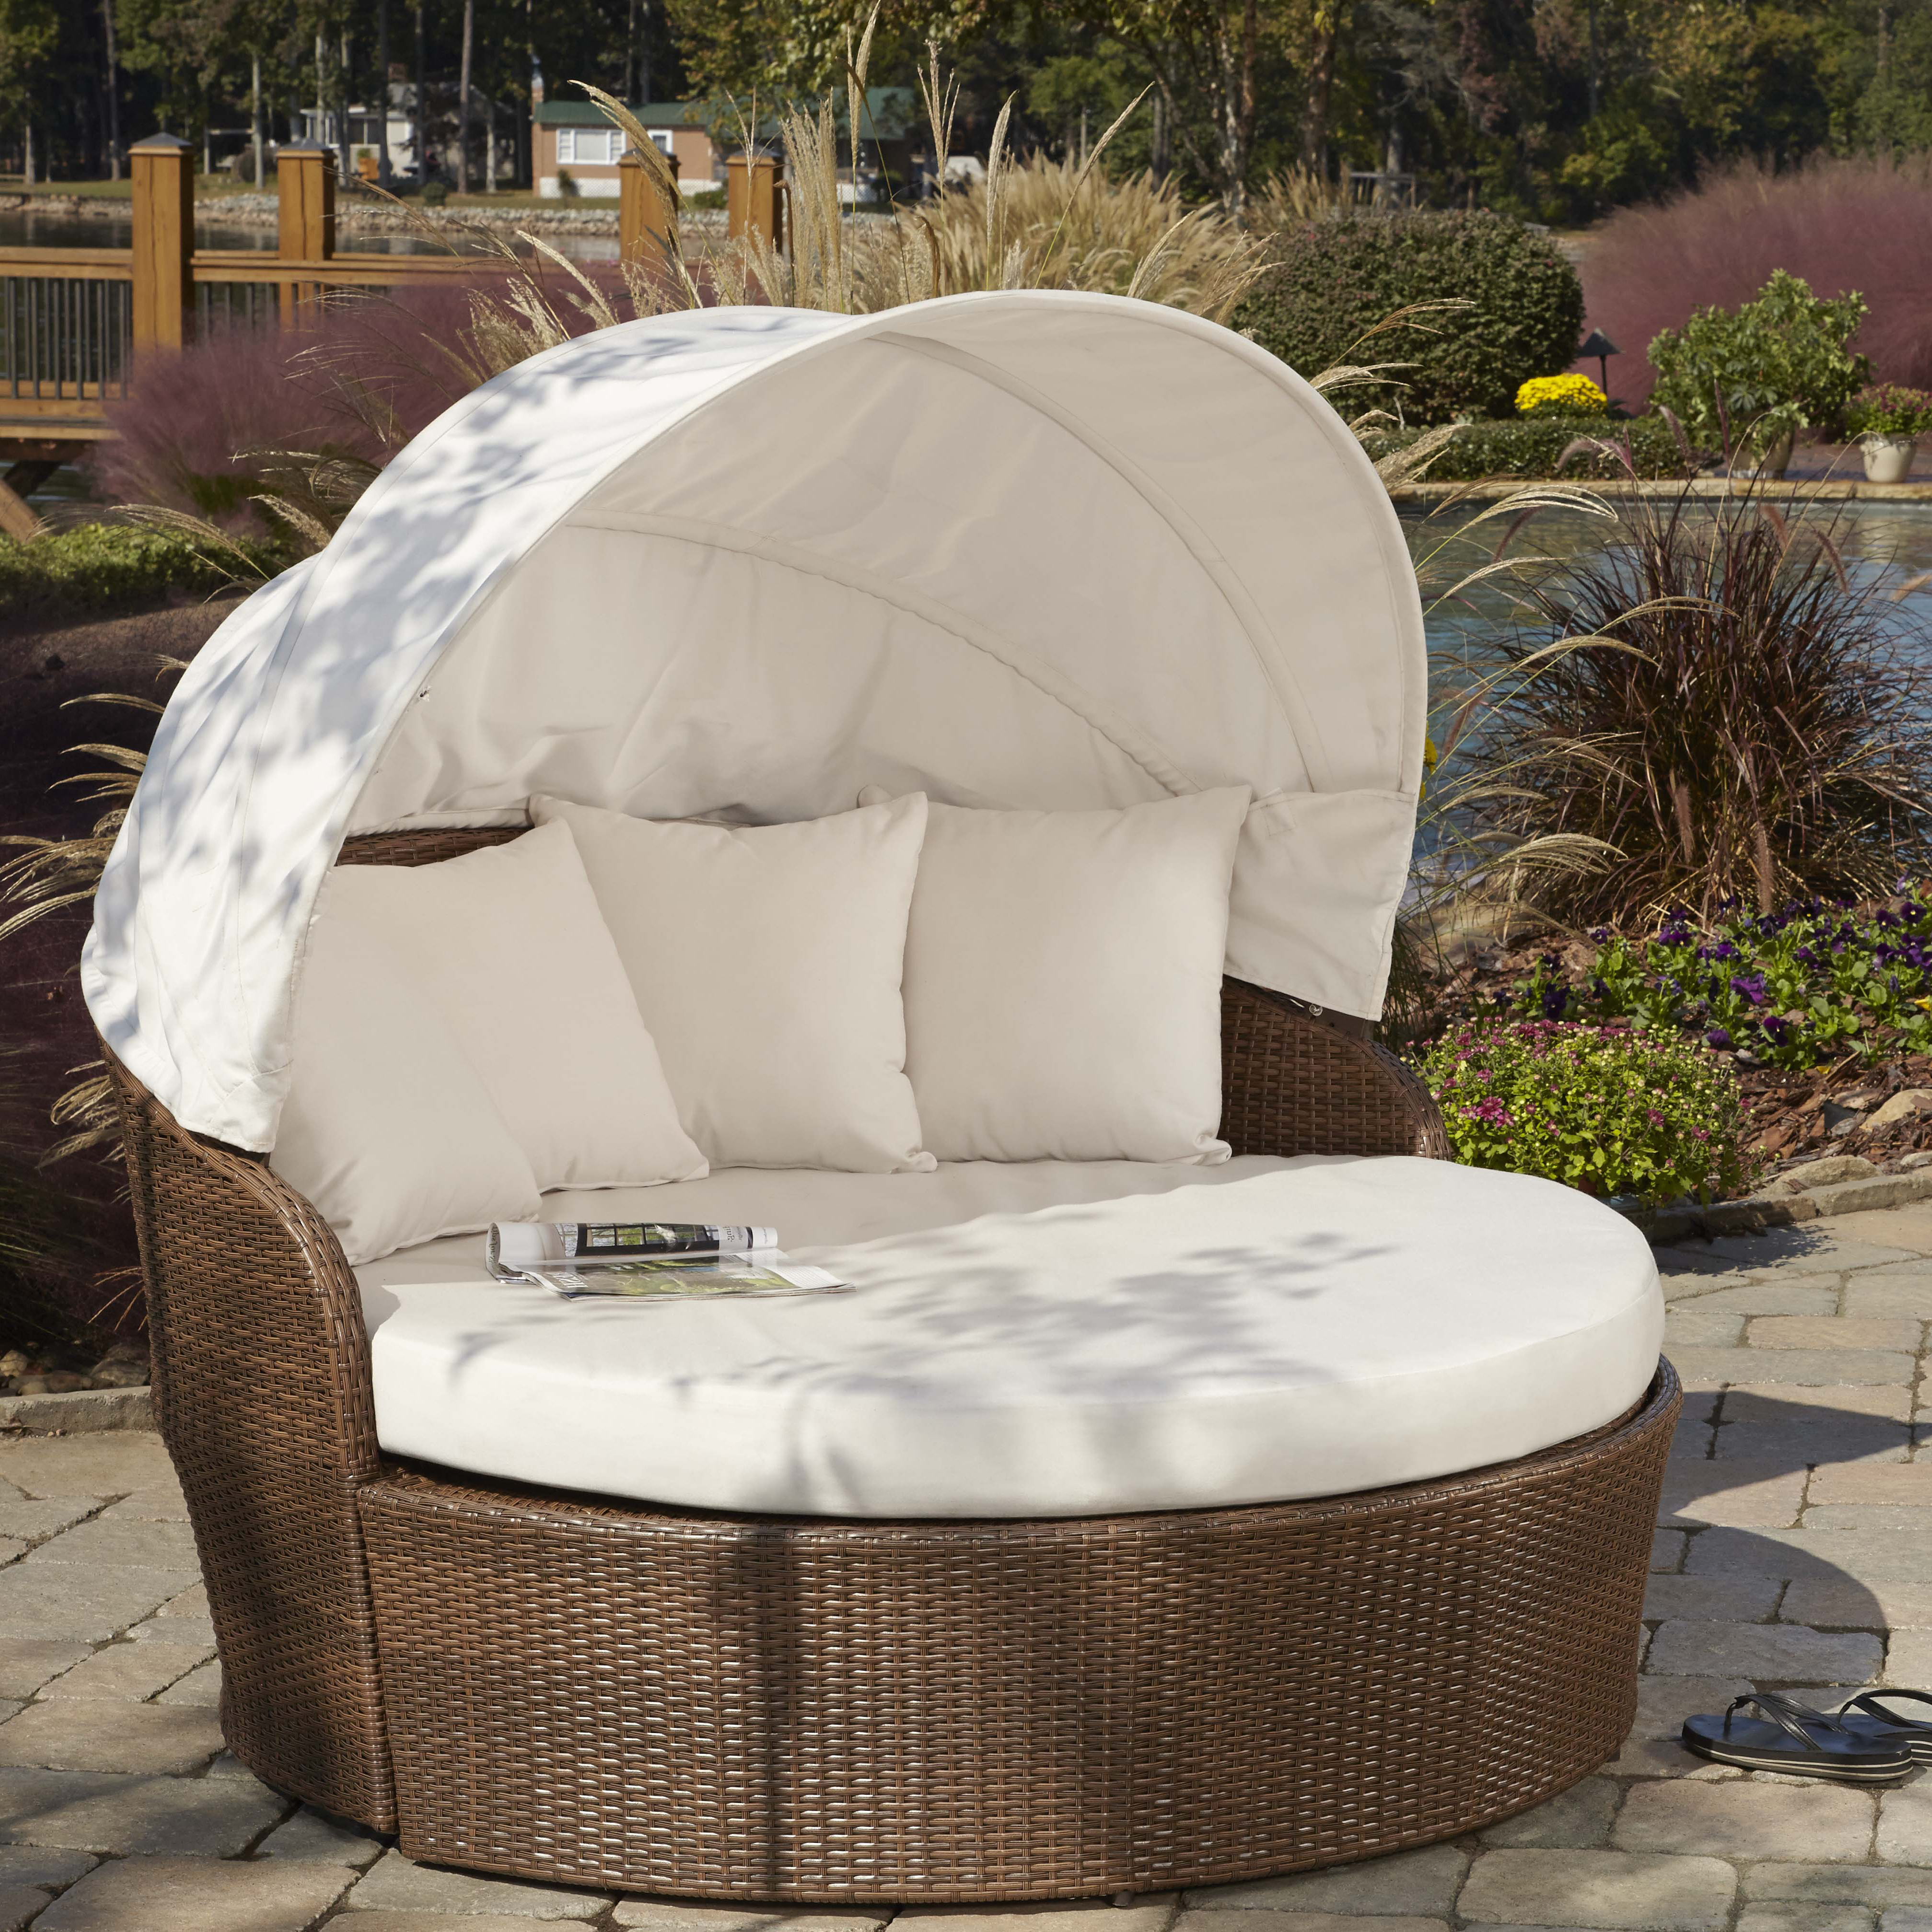 Preferred Gilbreath Daybeds With Cushions Inside Key Biscayne Patio Daybed With Sunbrella Cushions (View 17 of 20)